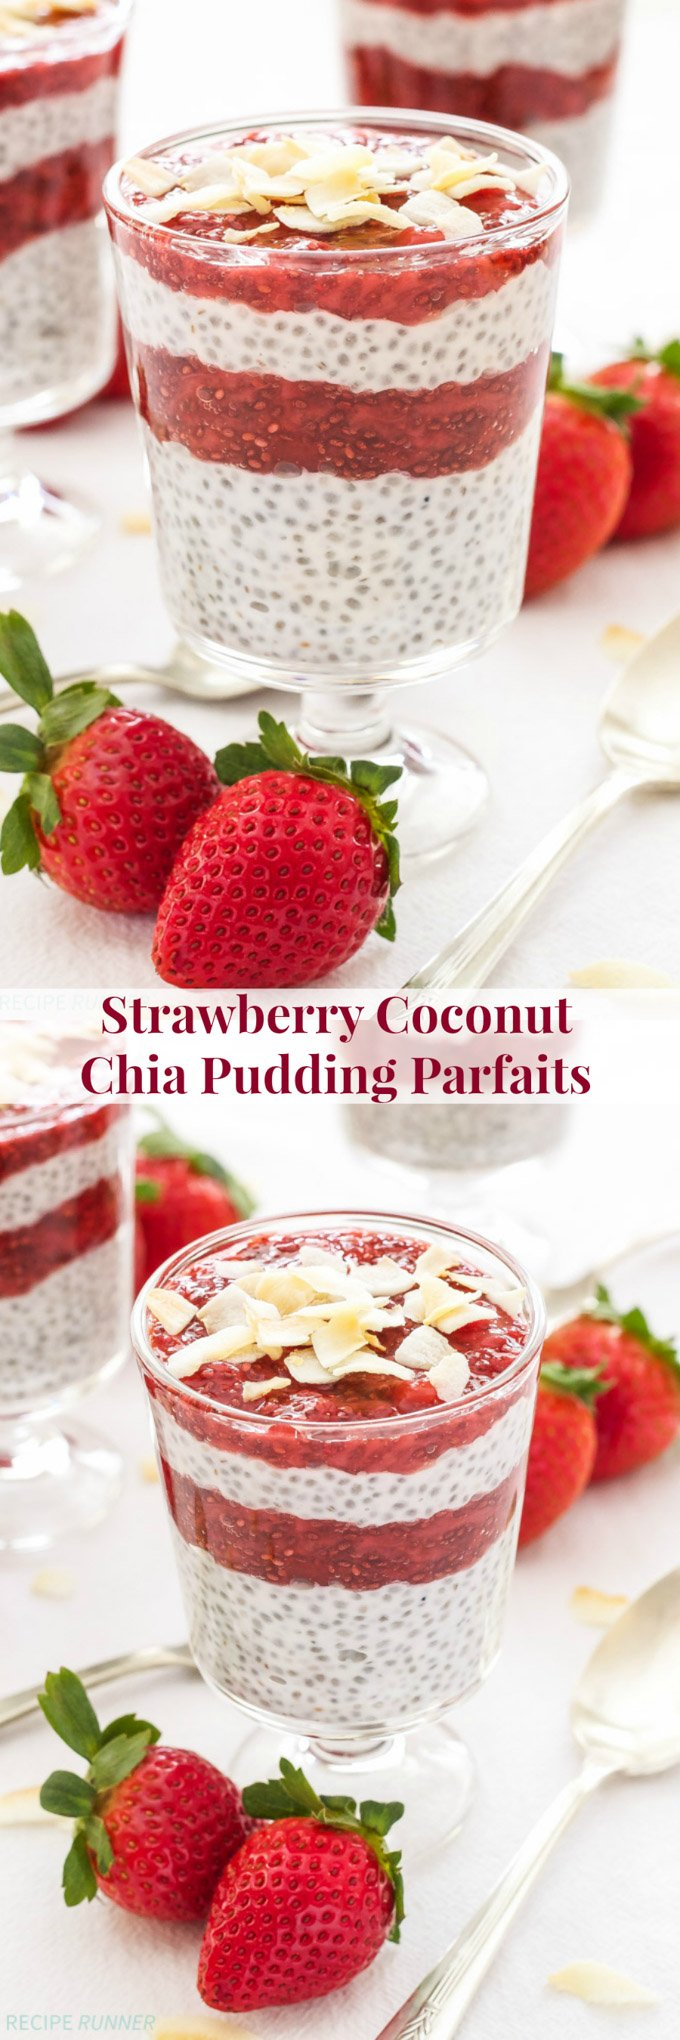 Strawberry Coconut Chia Pudding Parfaits | Layers of coconut chia pudding and strawberry chia jam come together in one deliciously perfect bite!